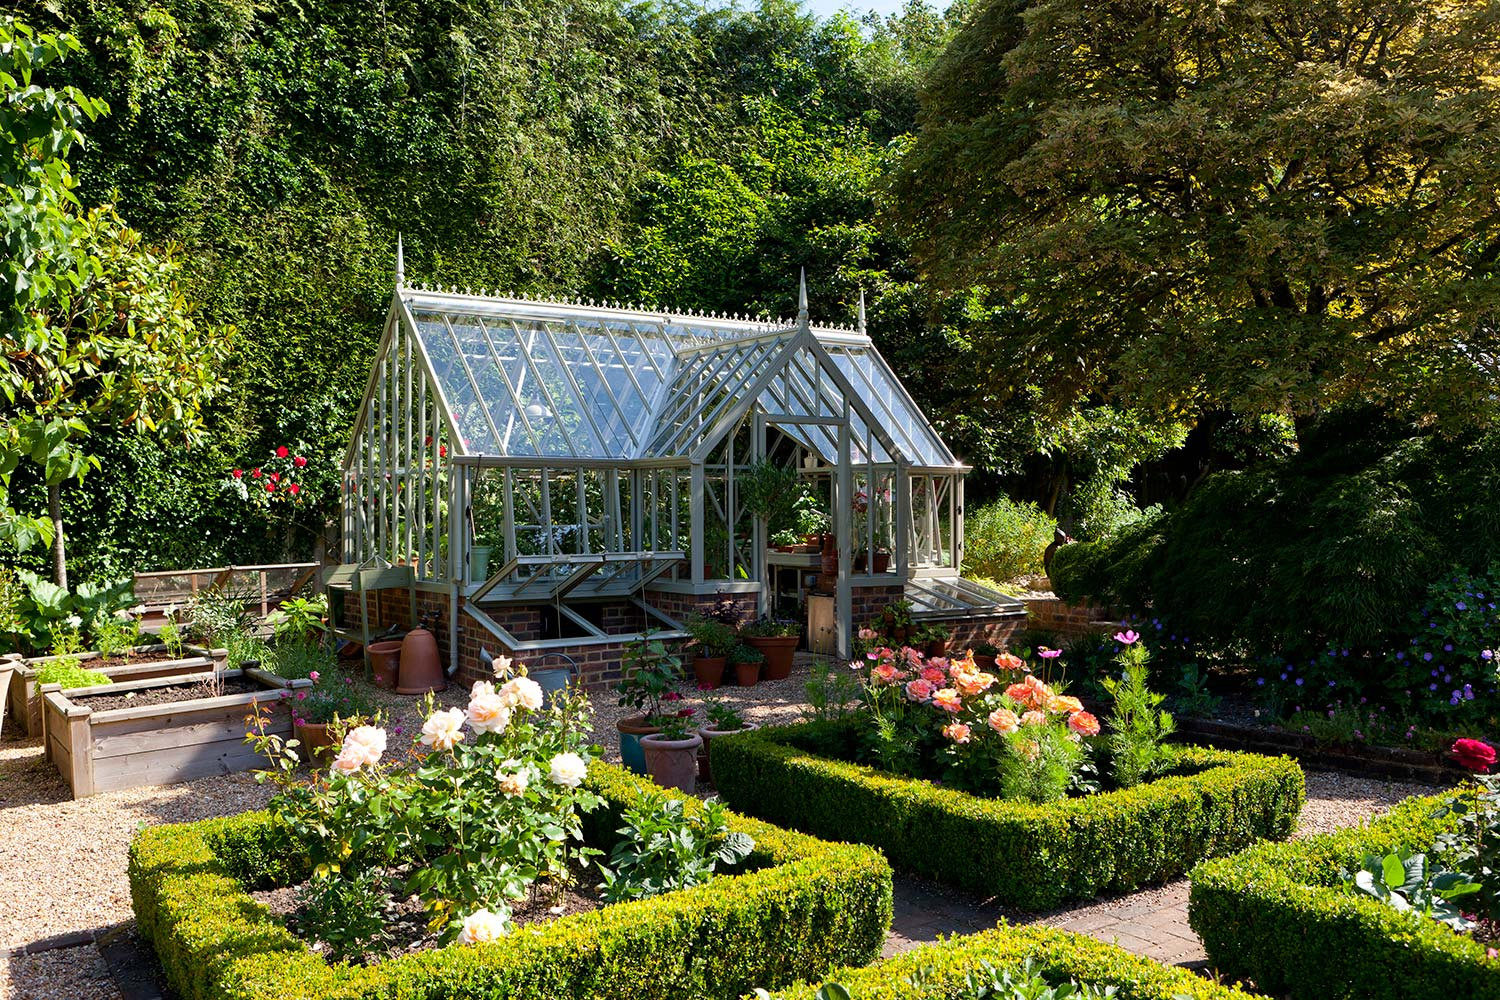 The Fortrey Greenhouse from the Alitex Kew Greenhouse Collection